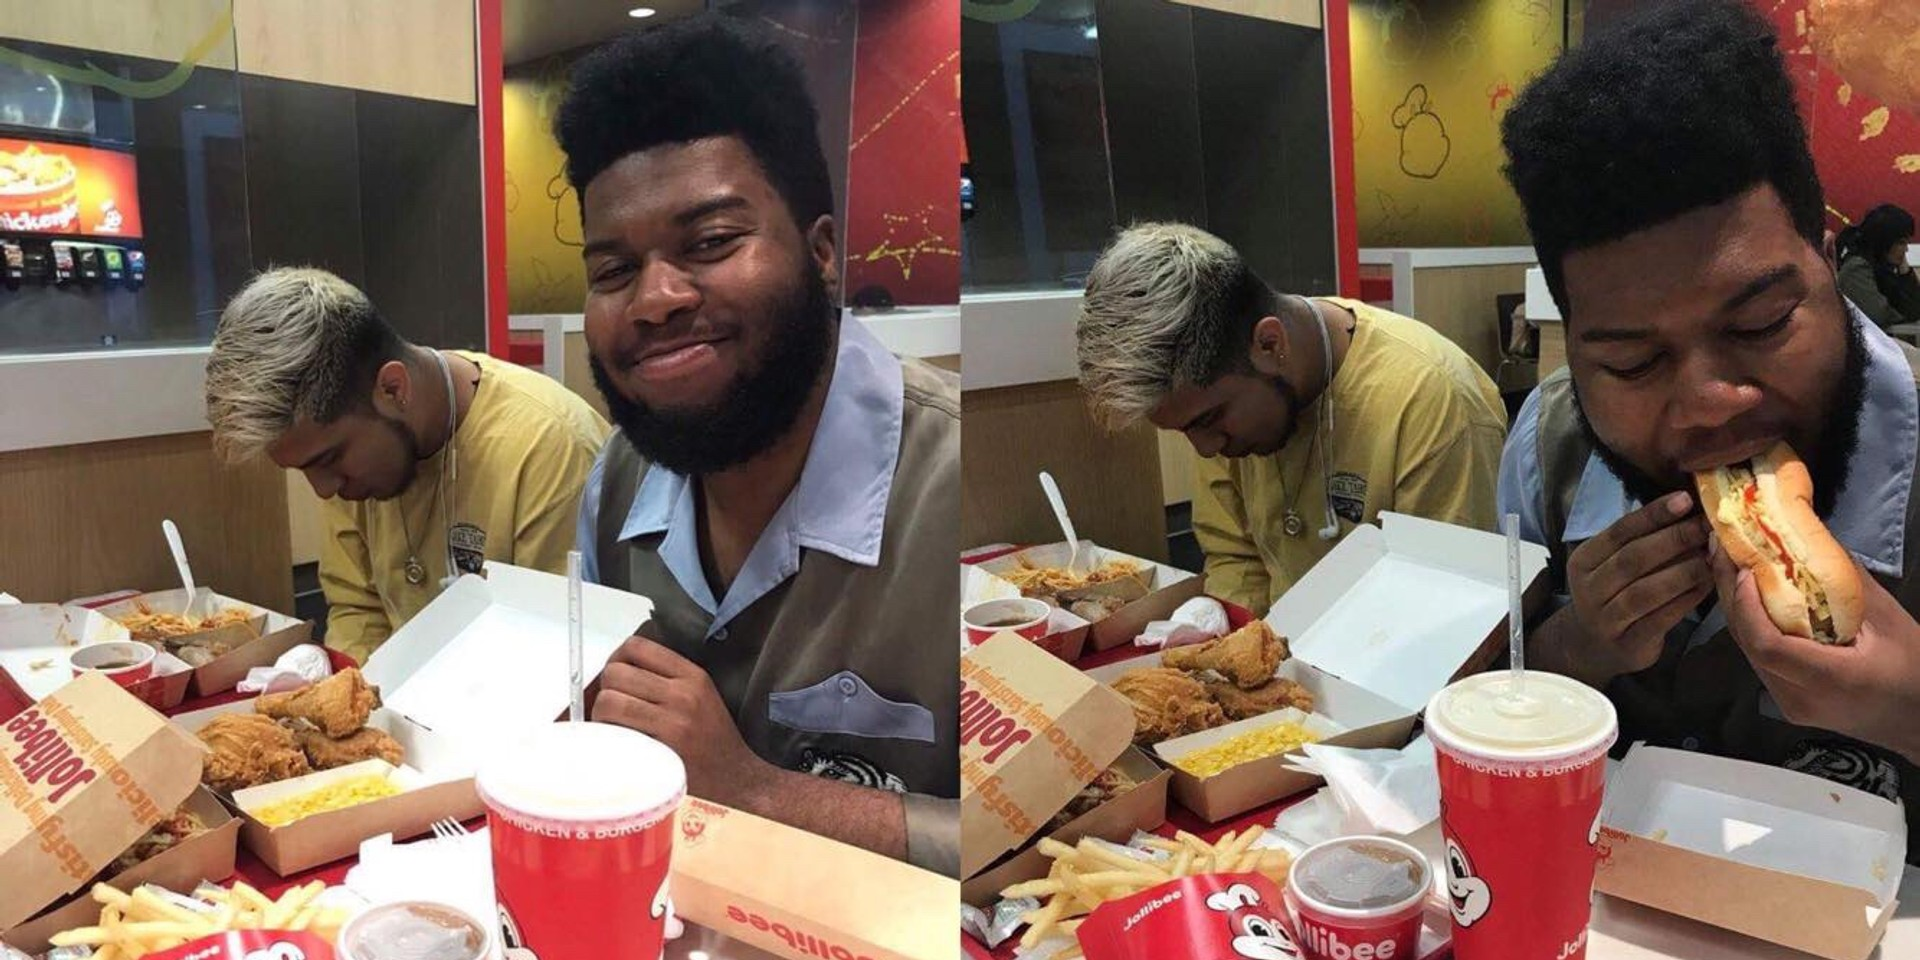 Khalid shows some love for Jollibee